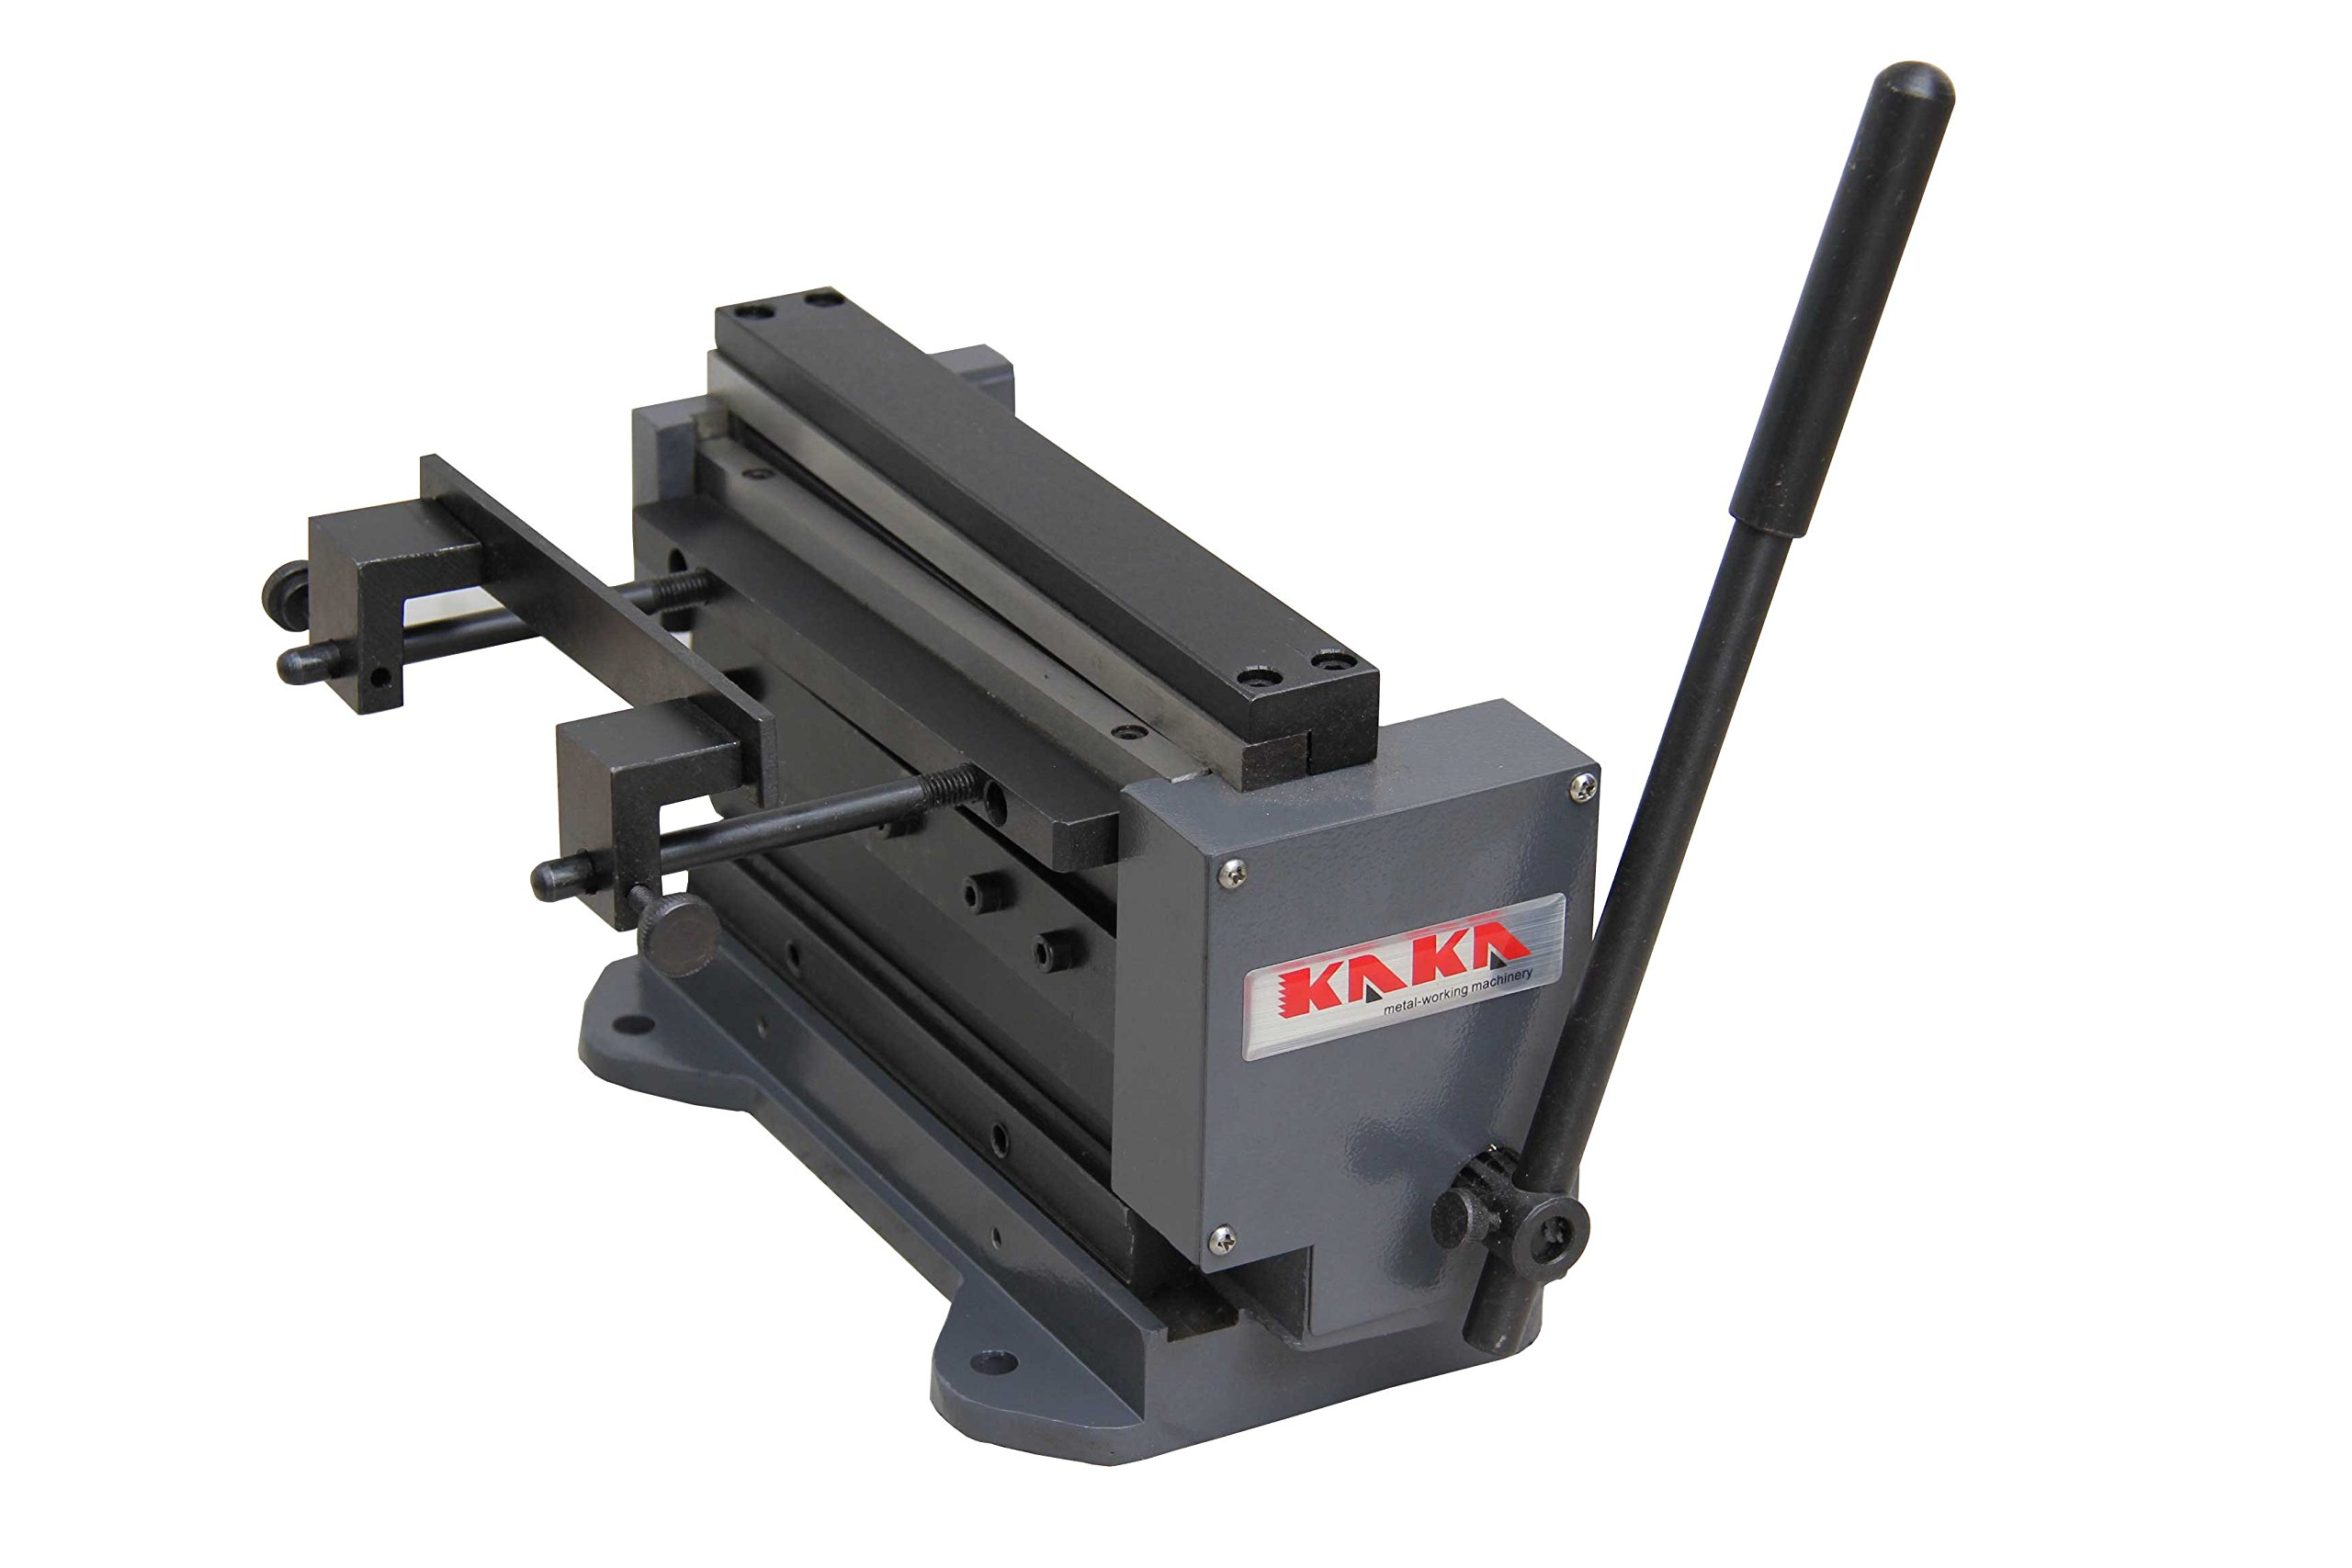 Cheap Manual Guillotine Shear Find Manual Guillotine Shear Deals On Line At Alibaba Com